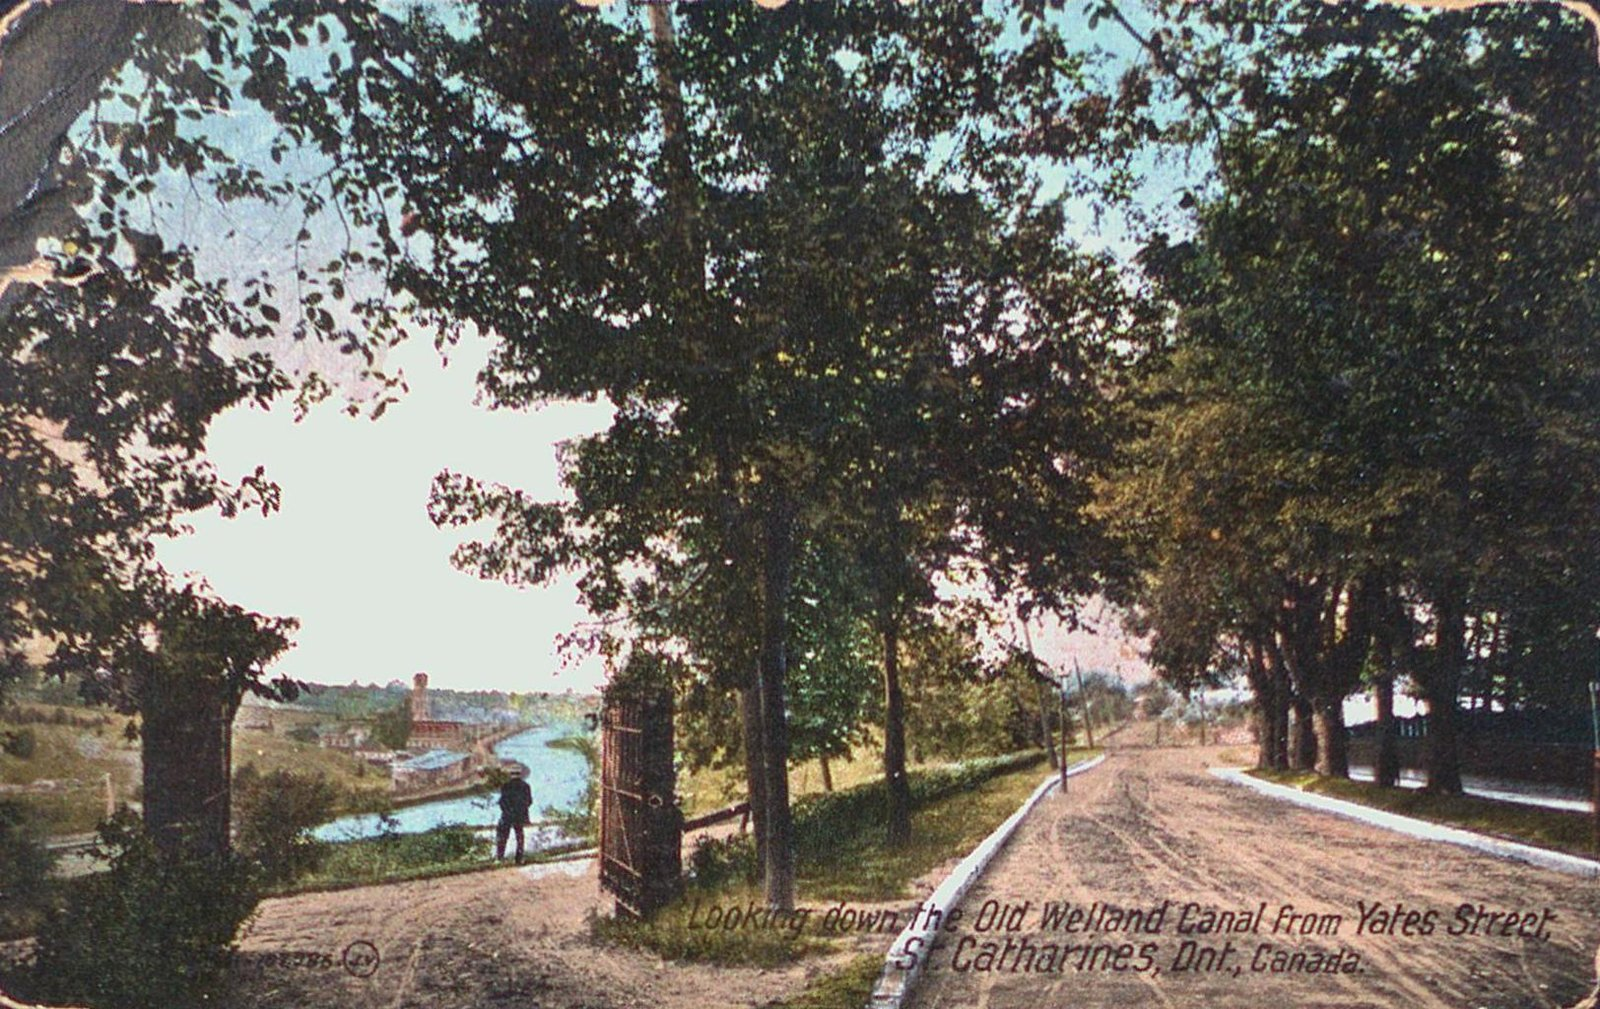 The Old Welland Canal from Yates Street